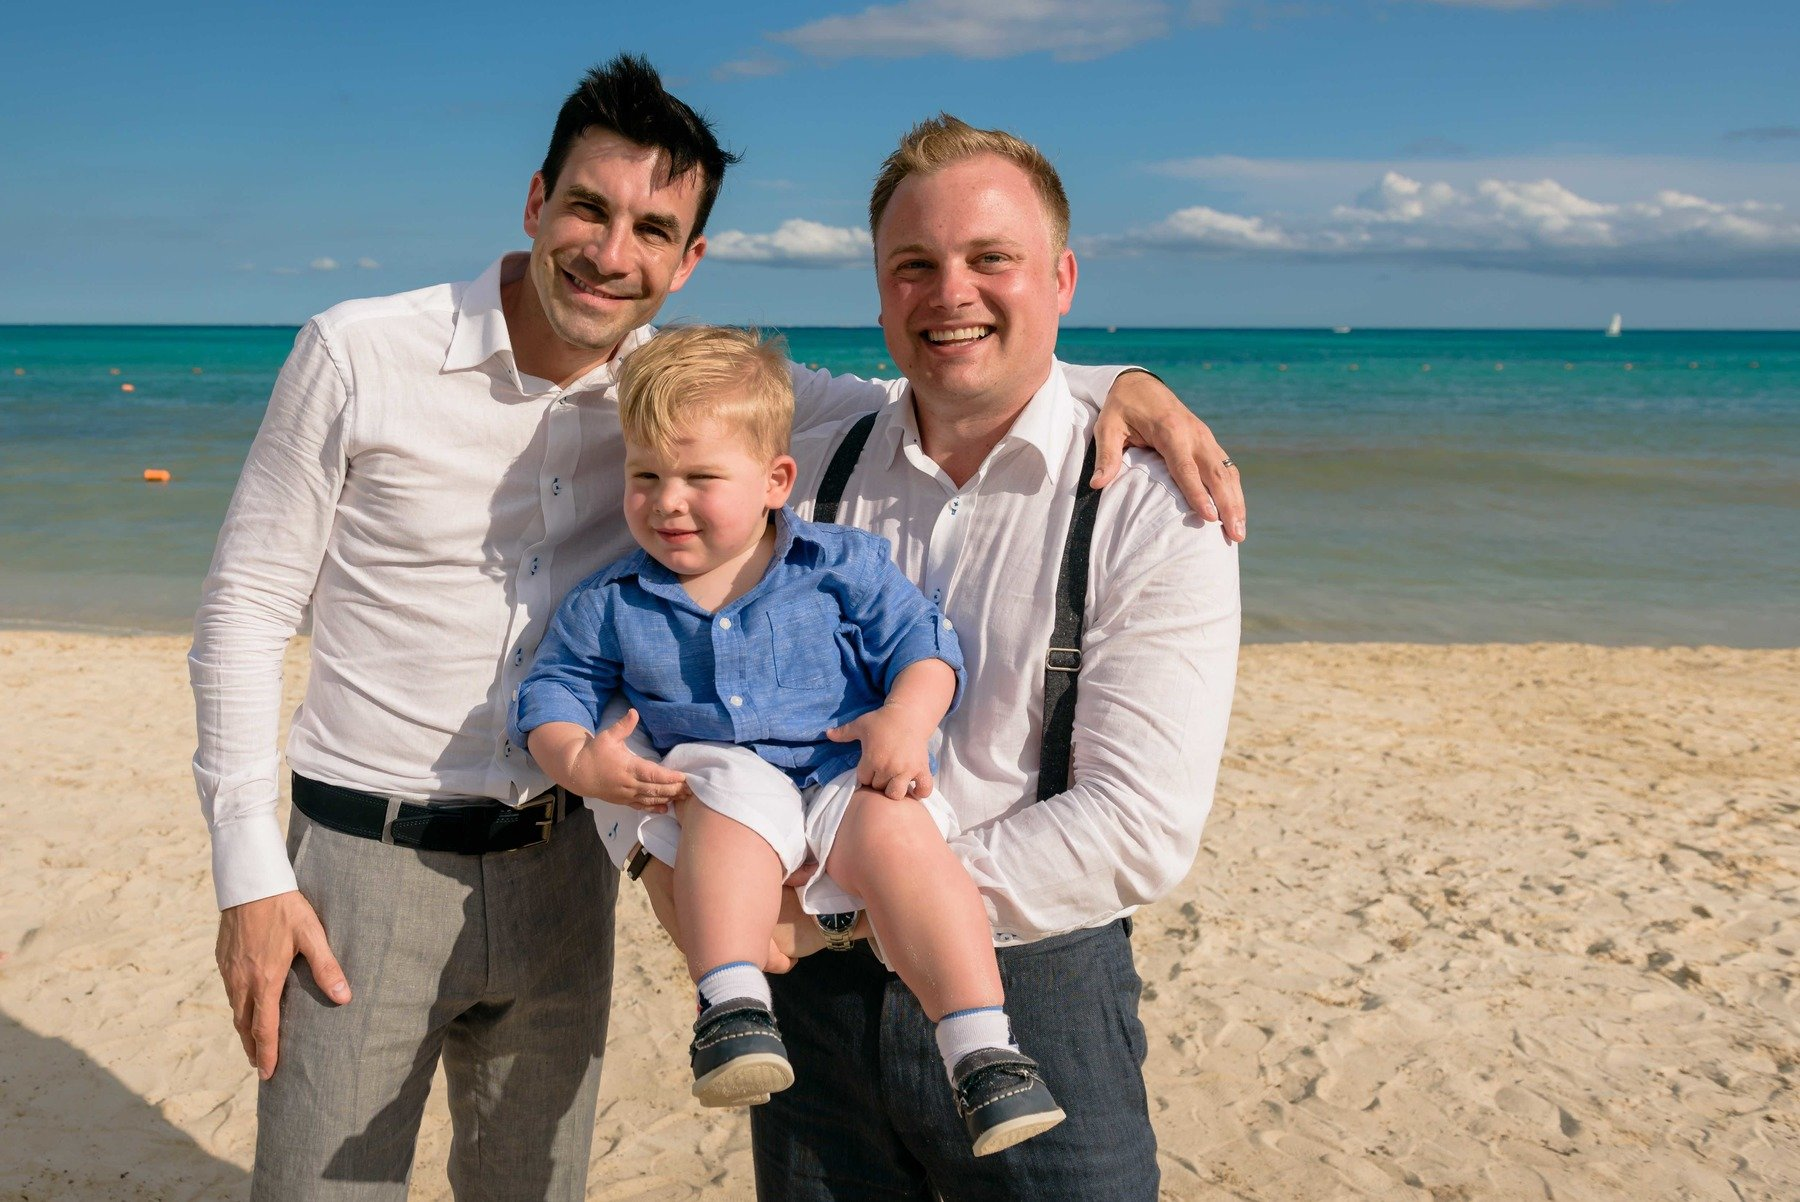 The wedding day ended up sunny, warm and all around delightful for Doug, Sawyer, and Brent.